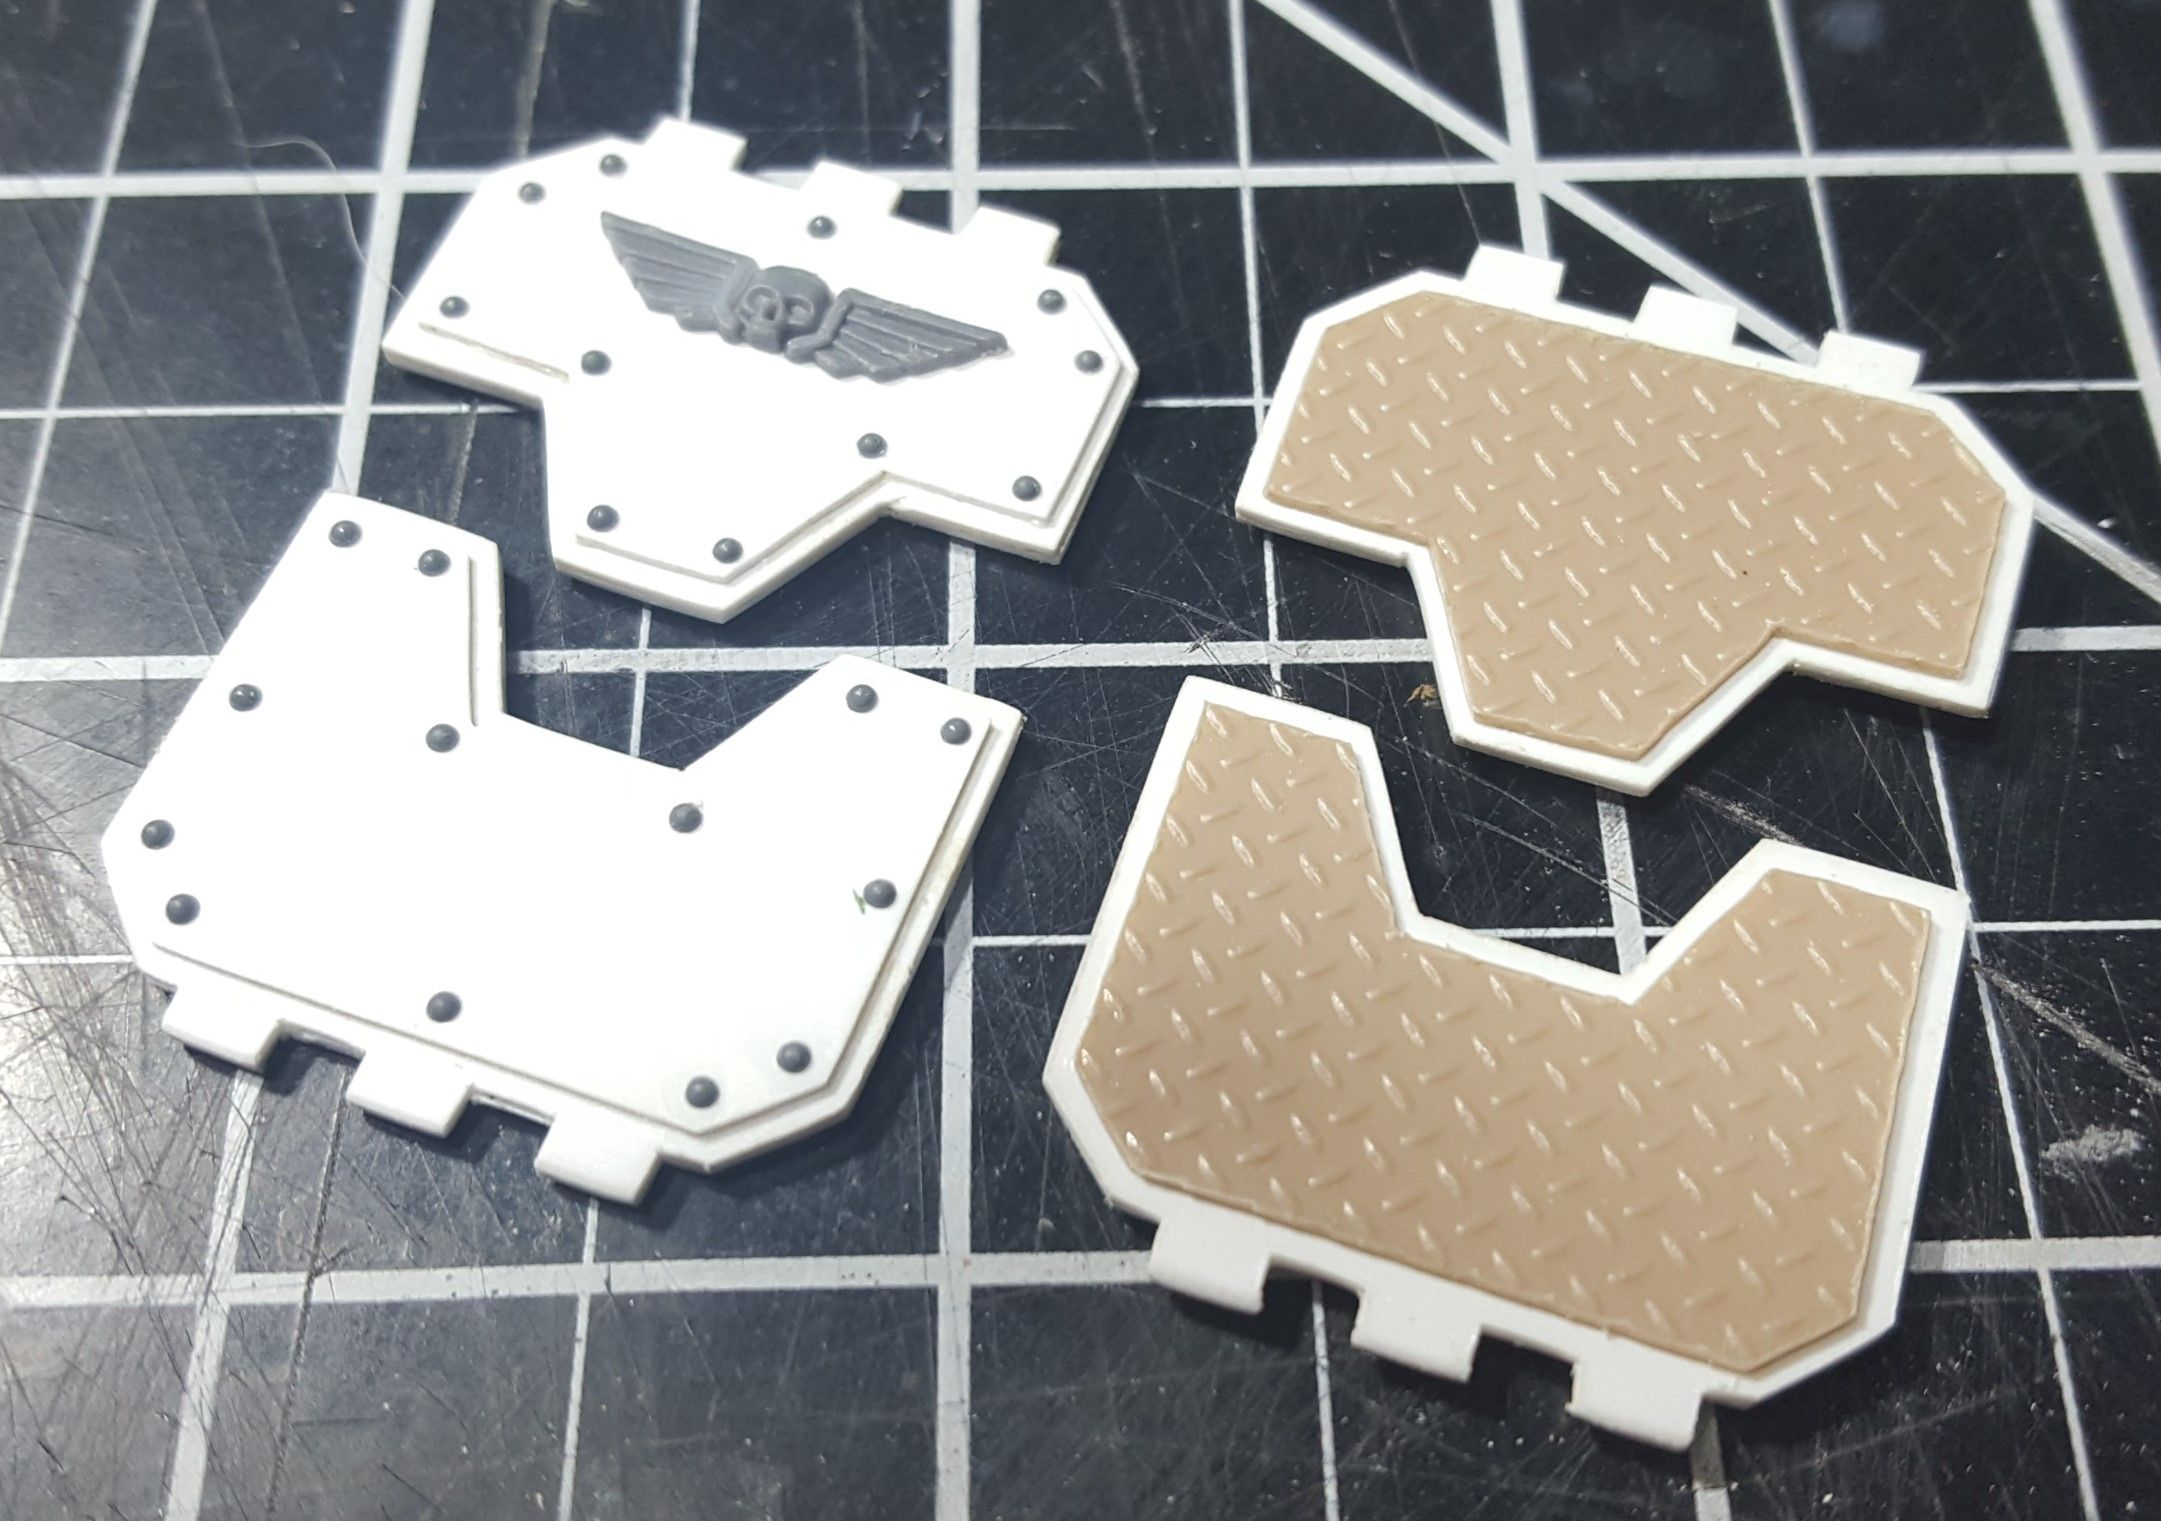 Use A Desktop Vinyl Cutter To Score Polystyrene Sheets To Build Custom Parts Here Two Landraider Doors Were Cons Cool Things To Make Scrapbook Custom Stencils